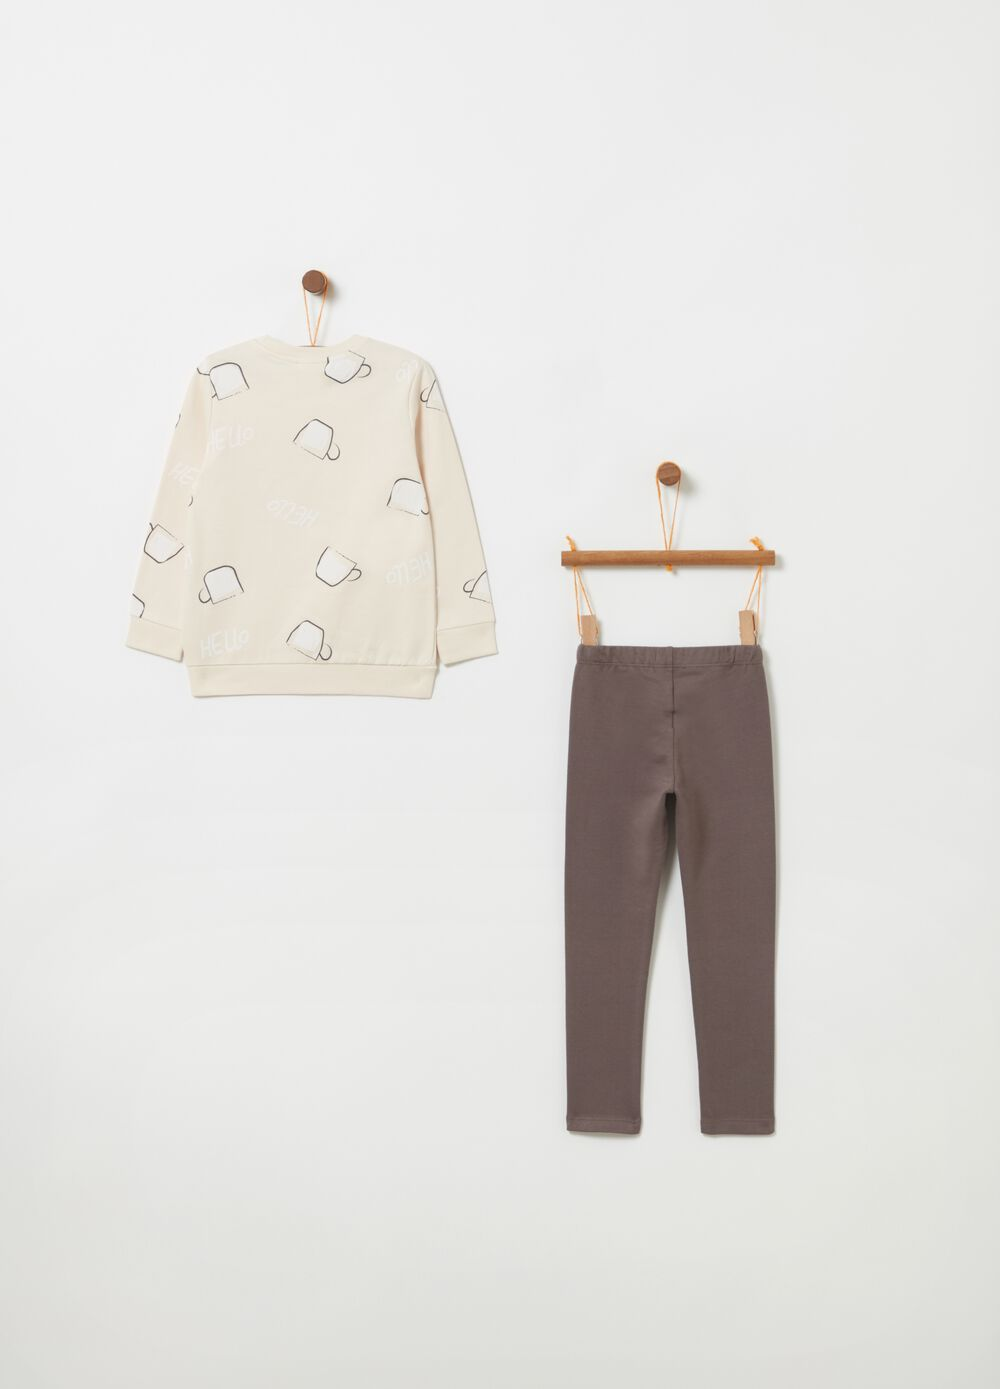 Puppy sweatshirt and trousers jogging set